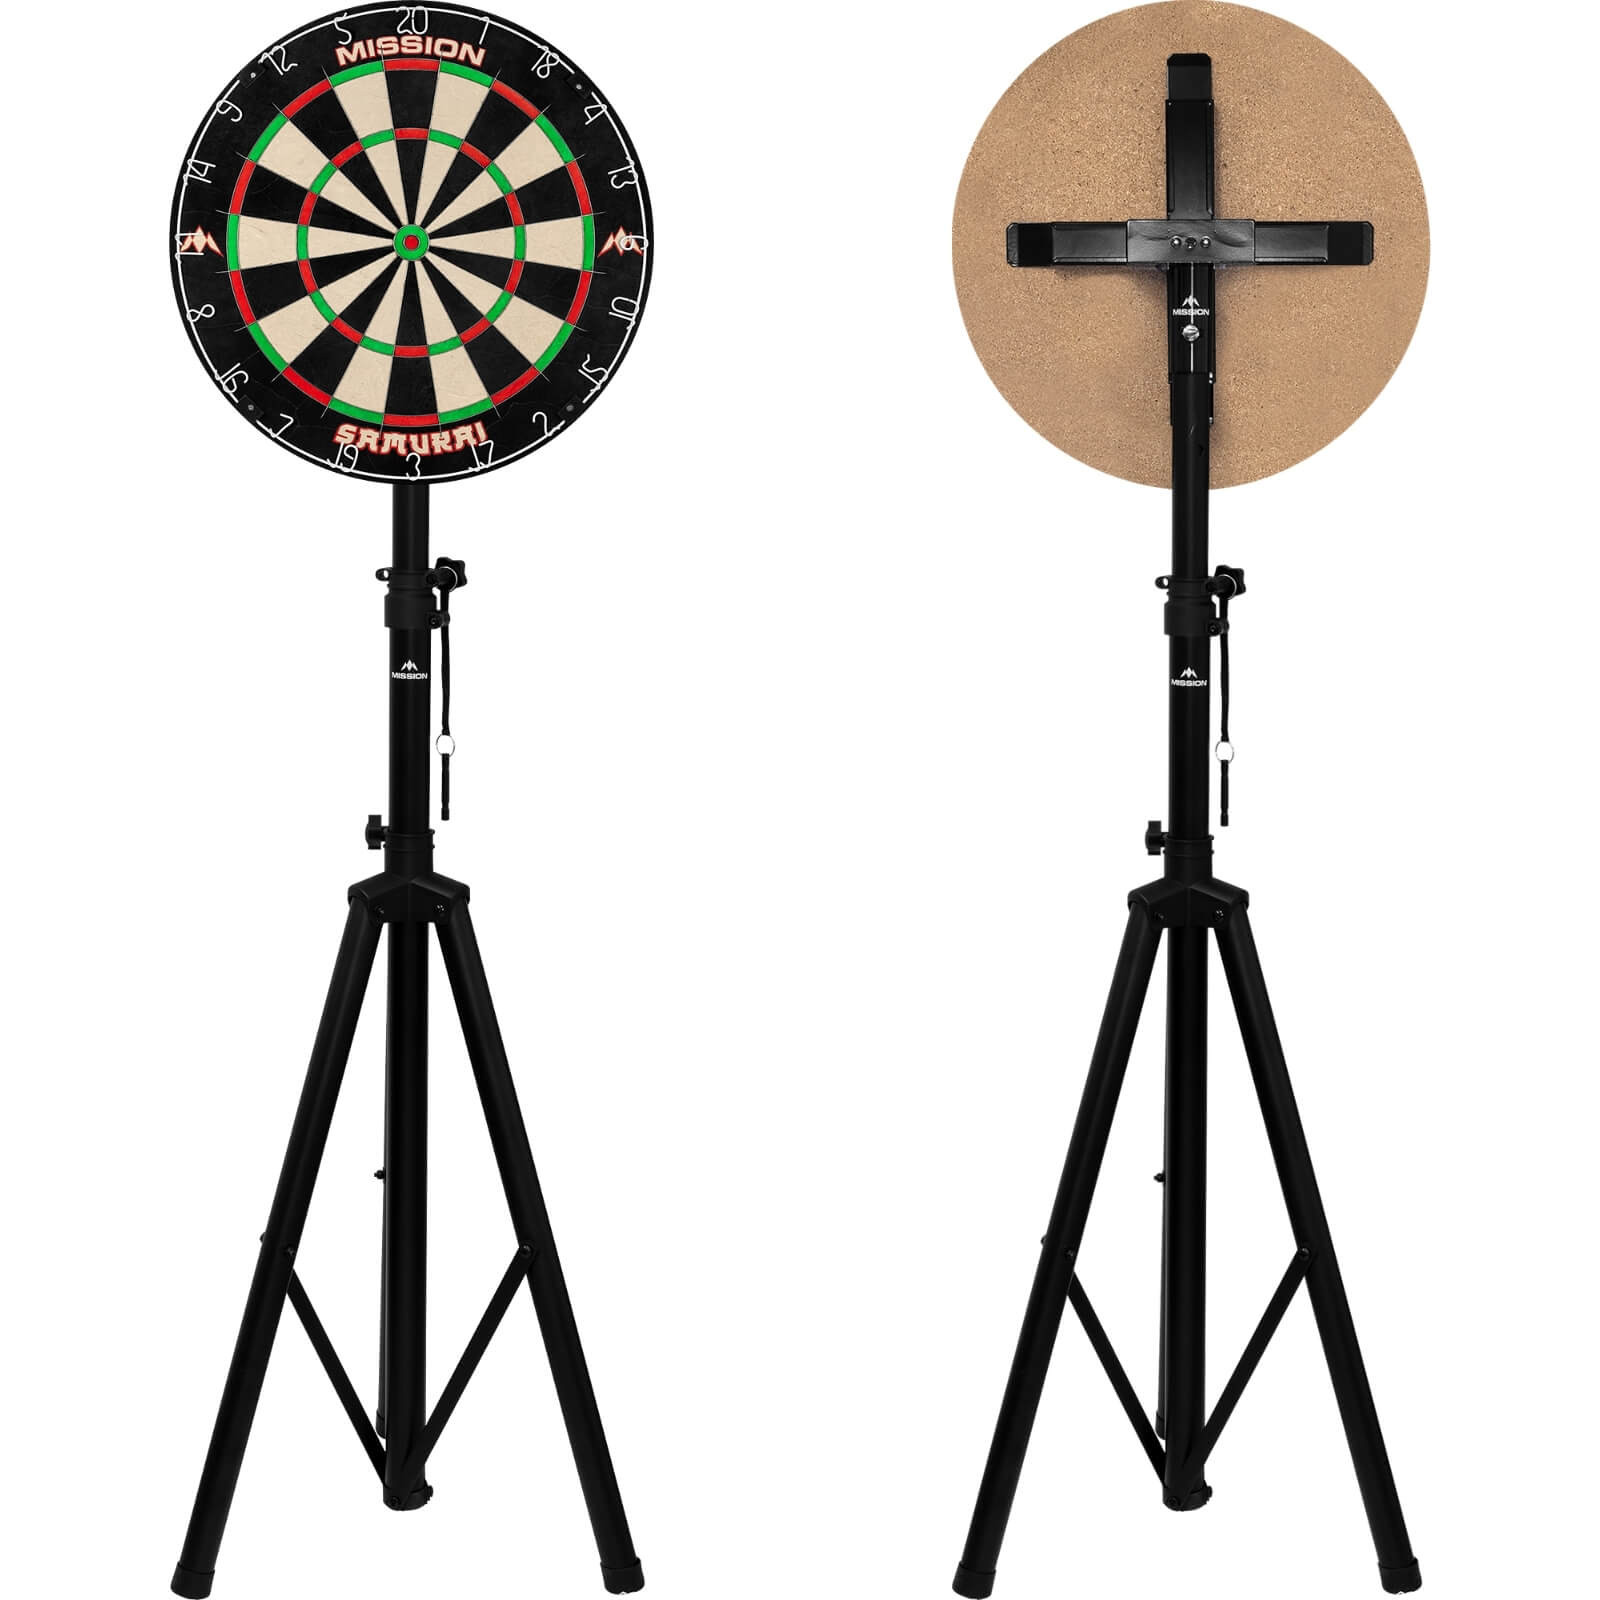 Dartboard Accessories - Mission - Travel Dartboard Stand - With Pro Bracket